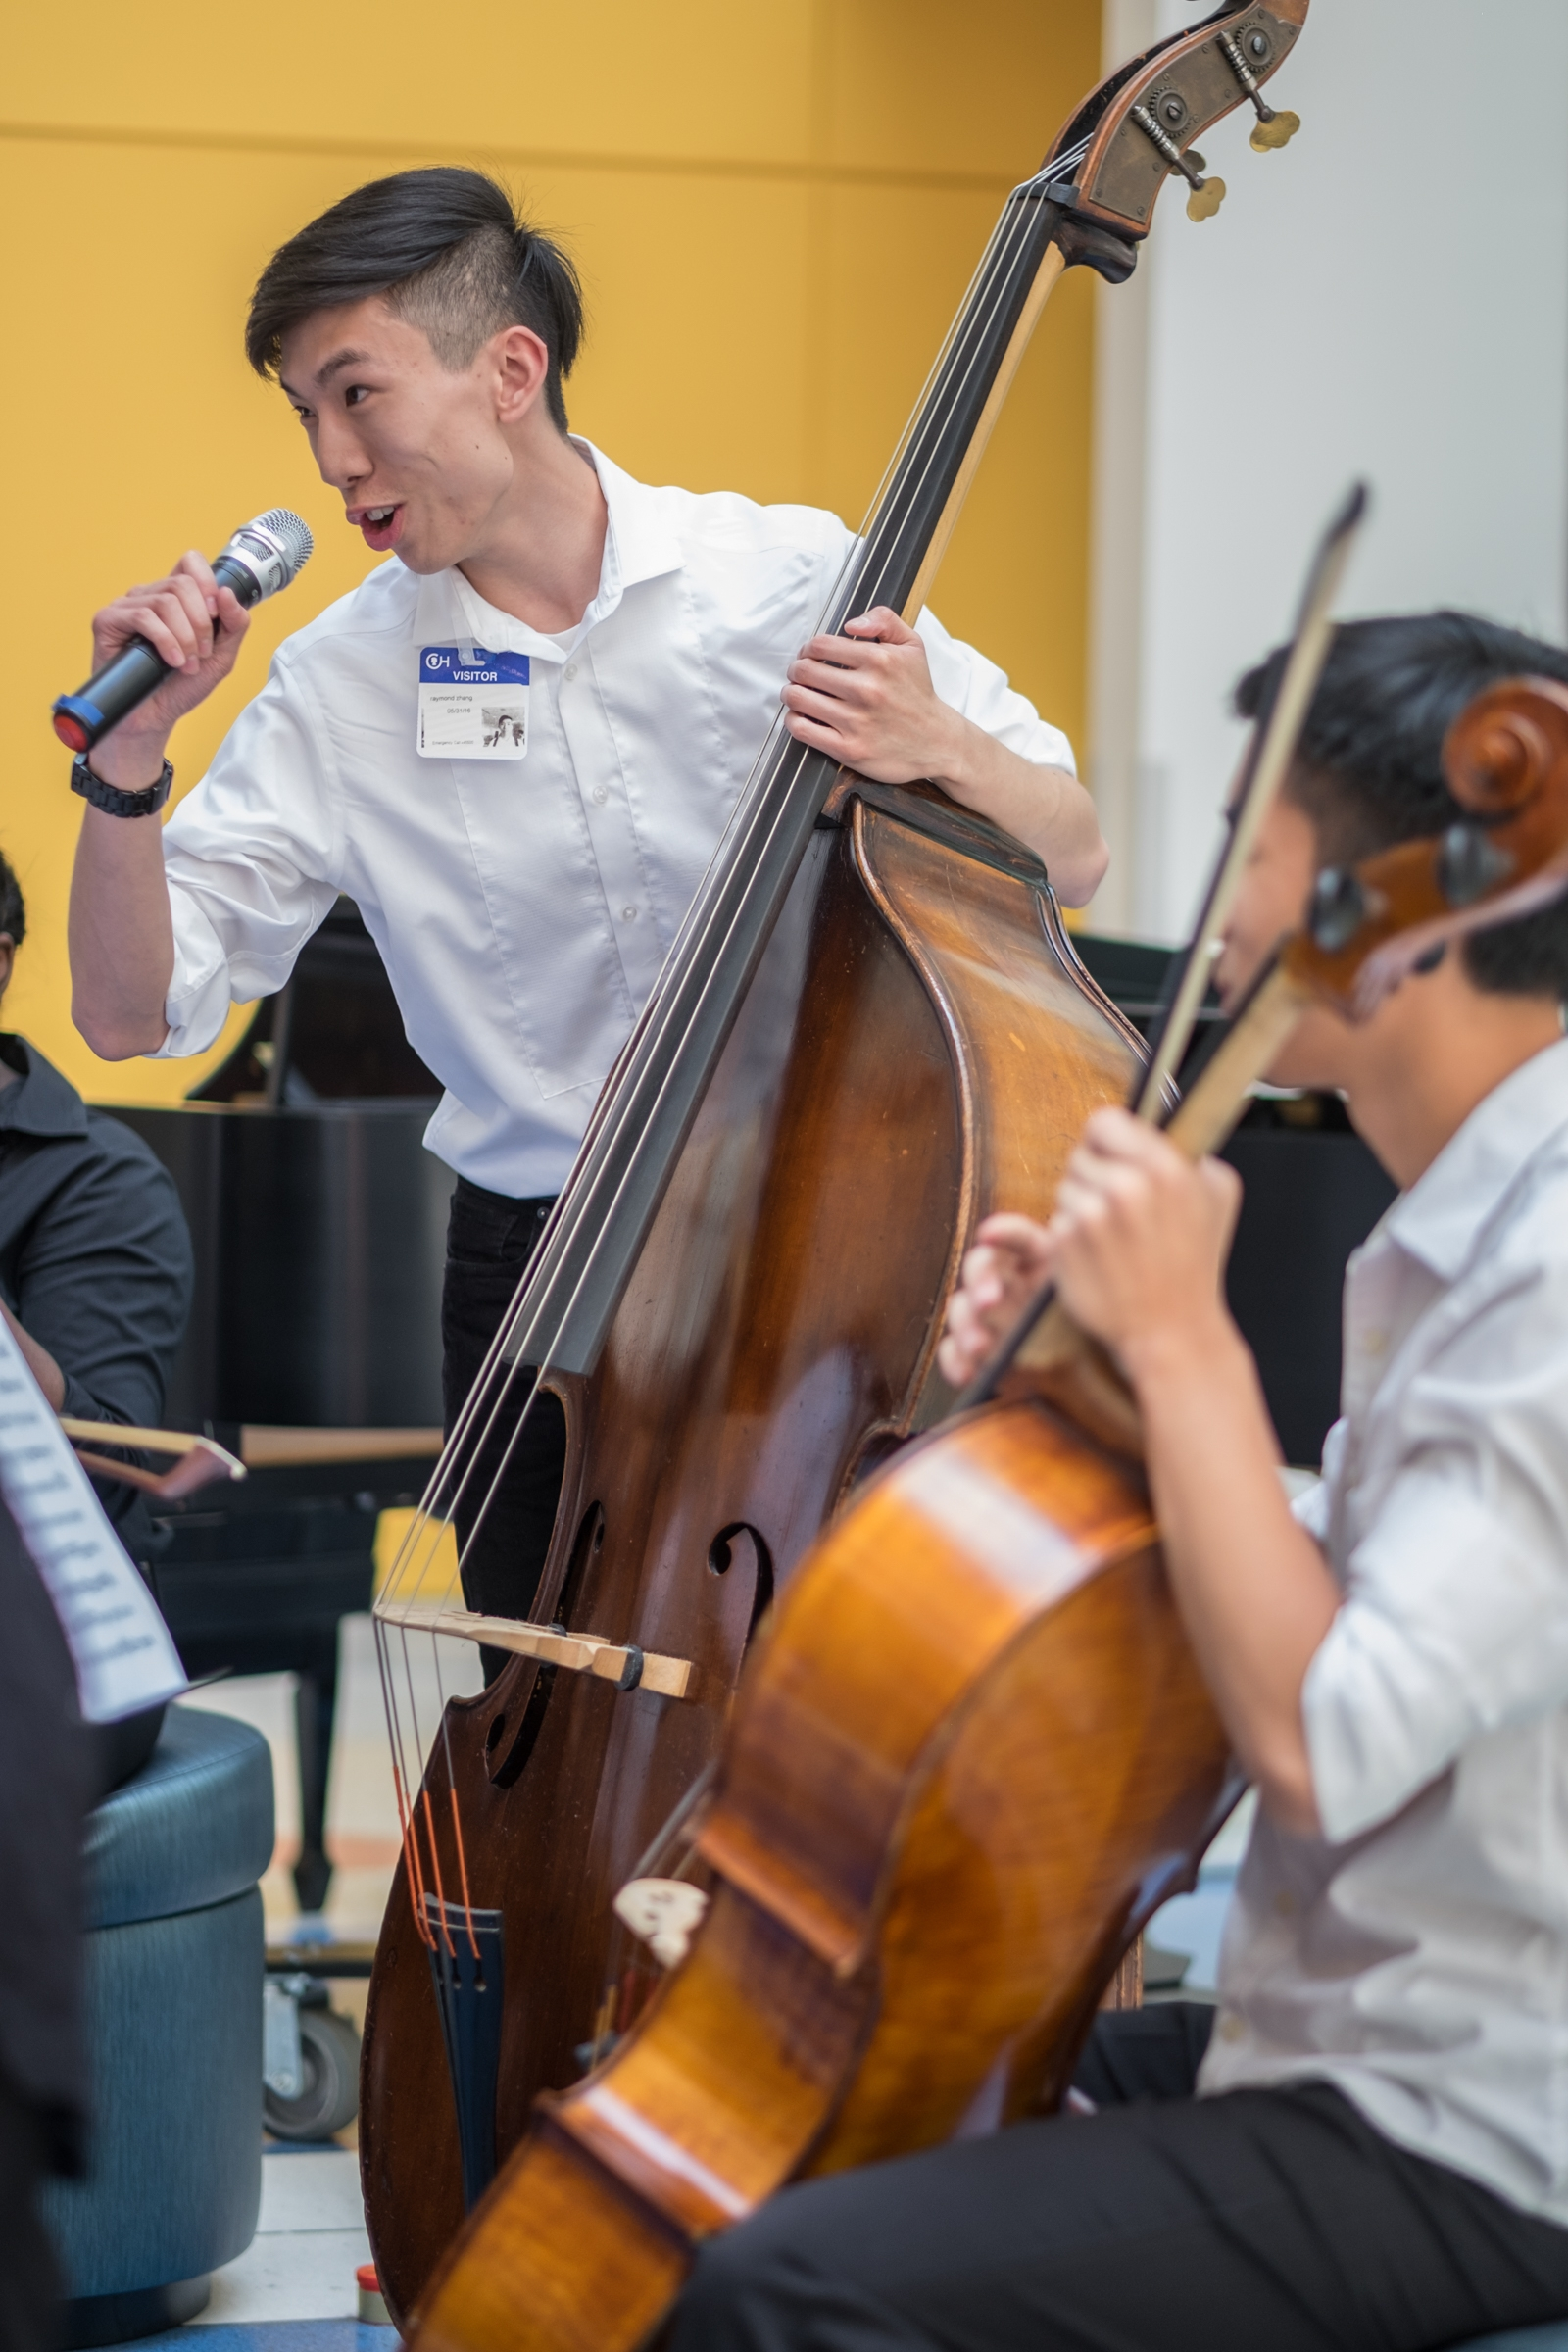 Raymond Zhang during interactive performance at Children's Hospital of Philadelphia (with Nathan Kim on cello)